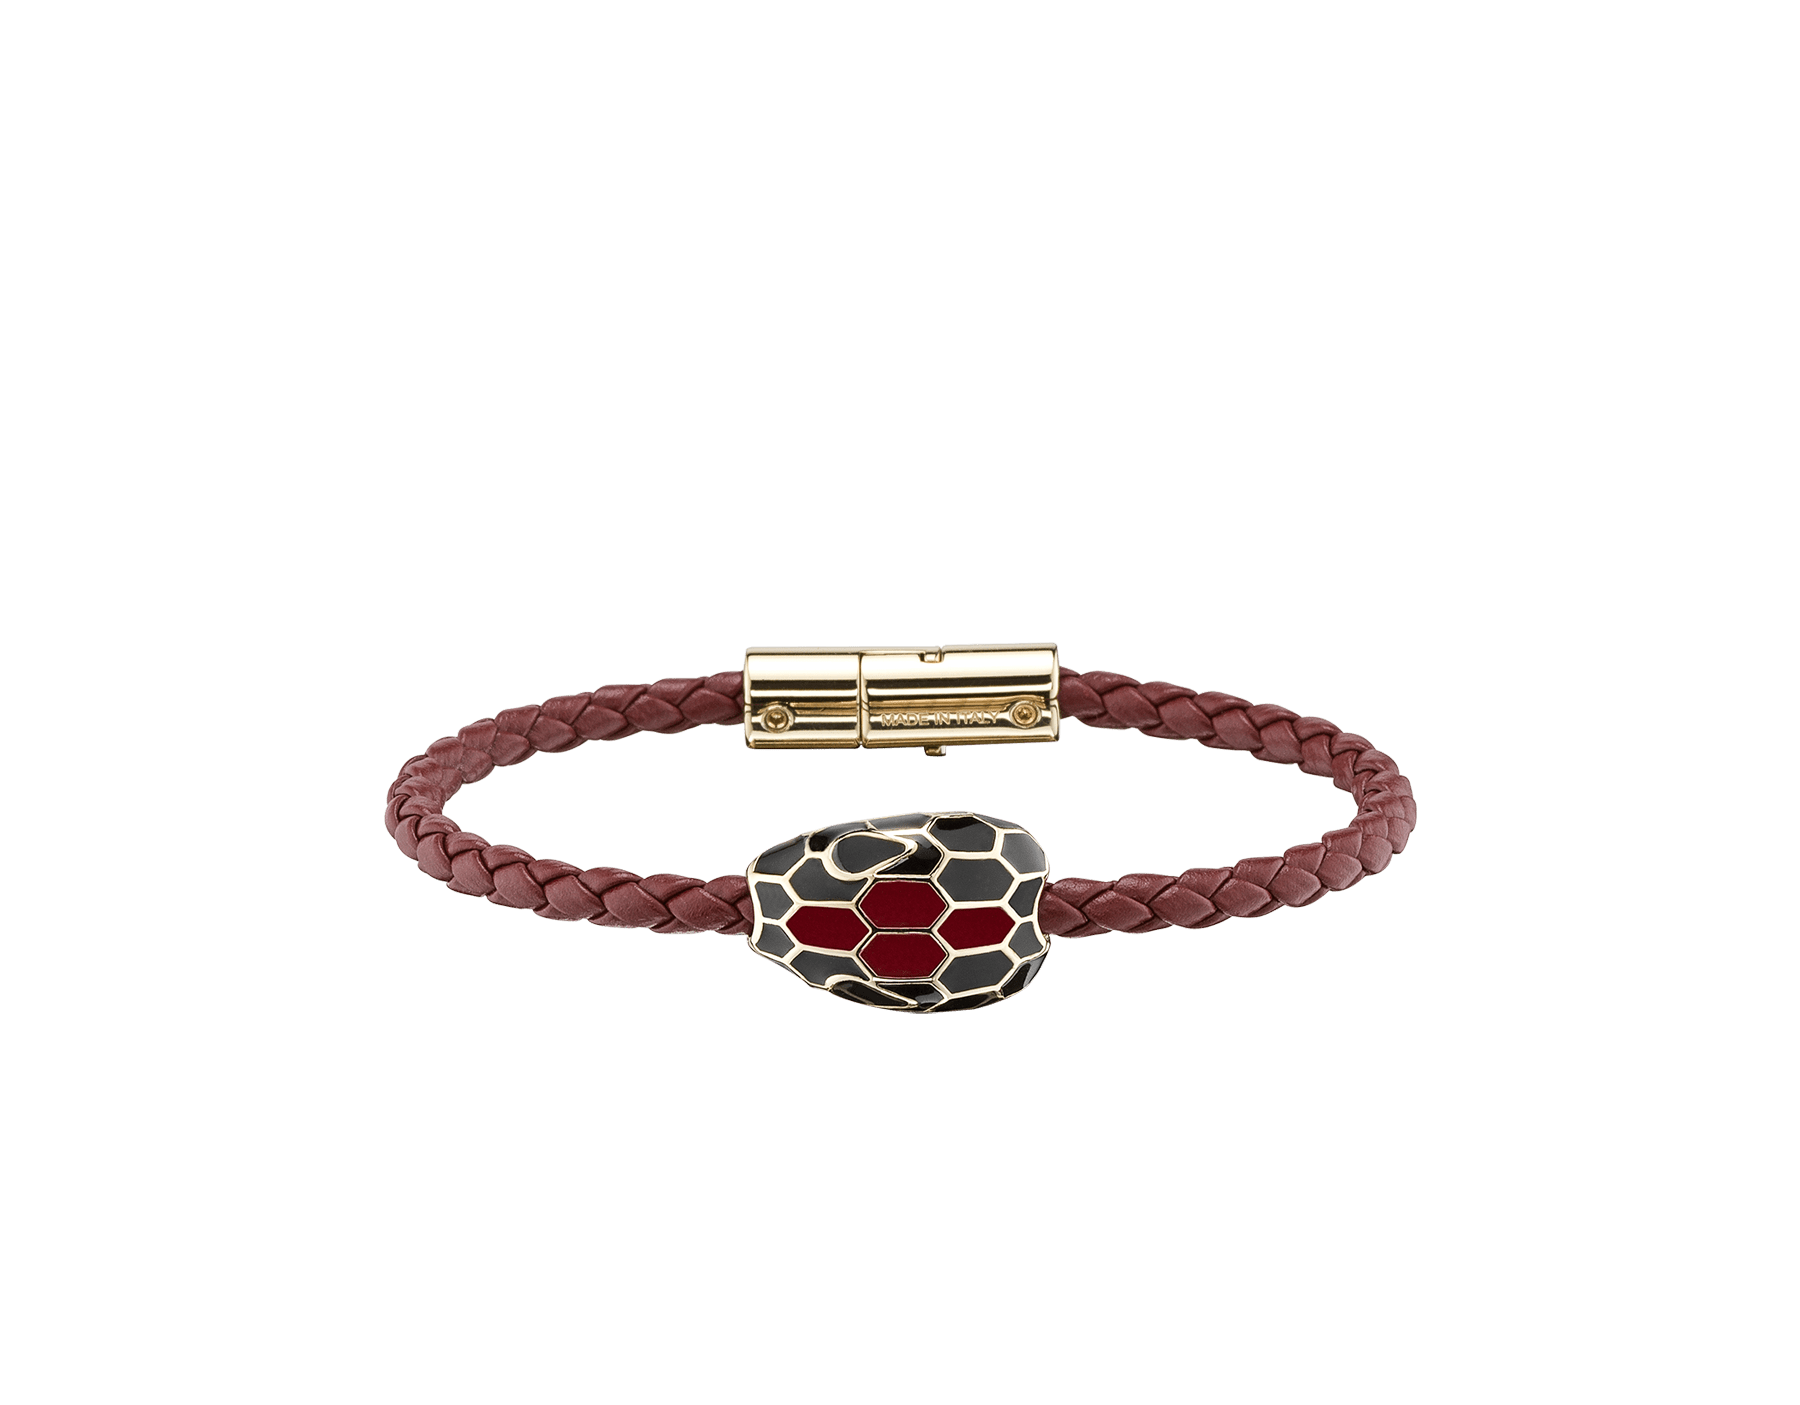 Serpenti Forever braid bracelet in ruby red woven calf leather with an iconic snakehead décor in black and ruby red enamel. SerpBraid-WCL-RR image 1